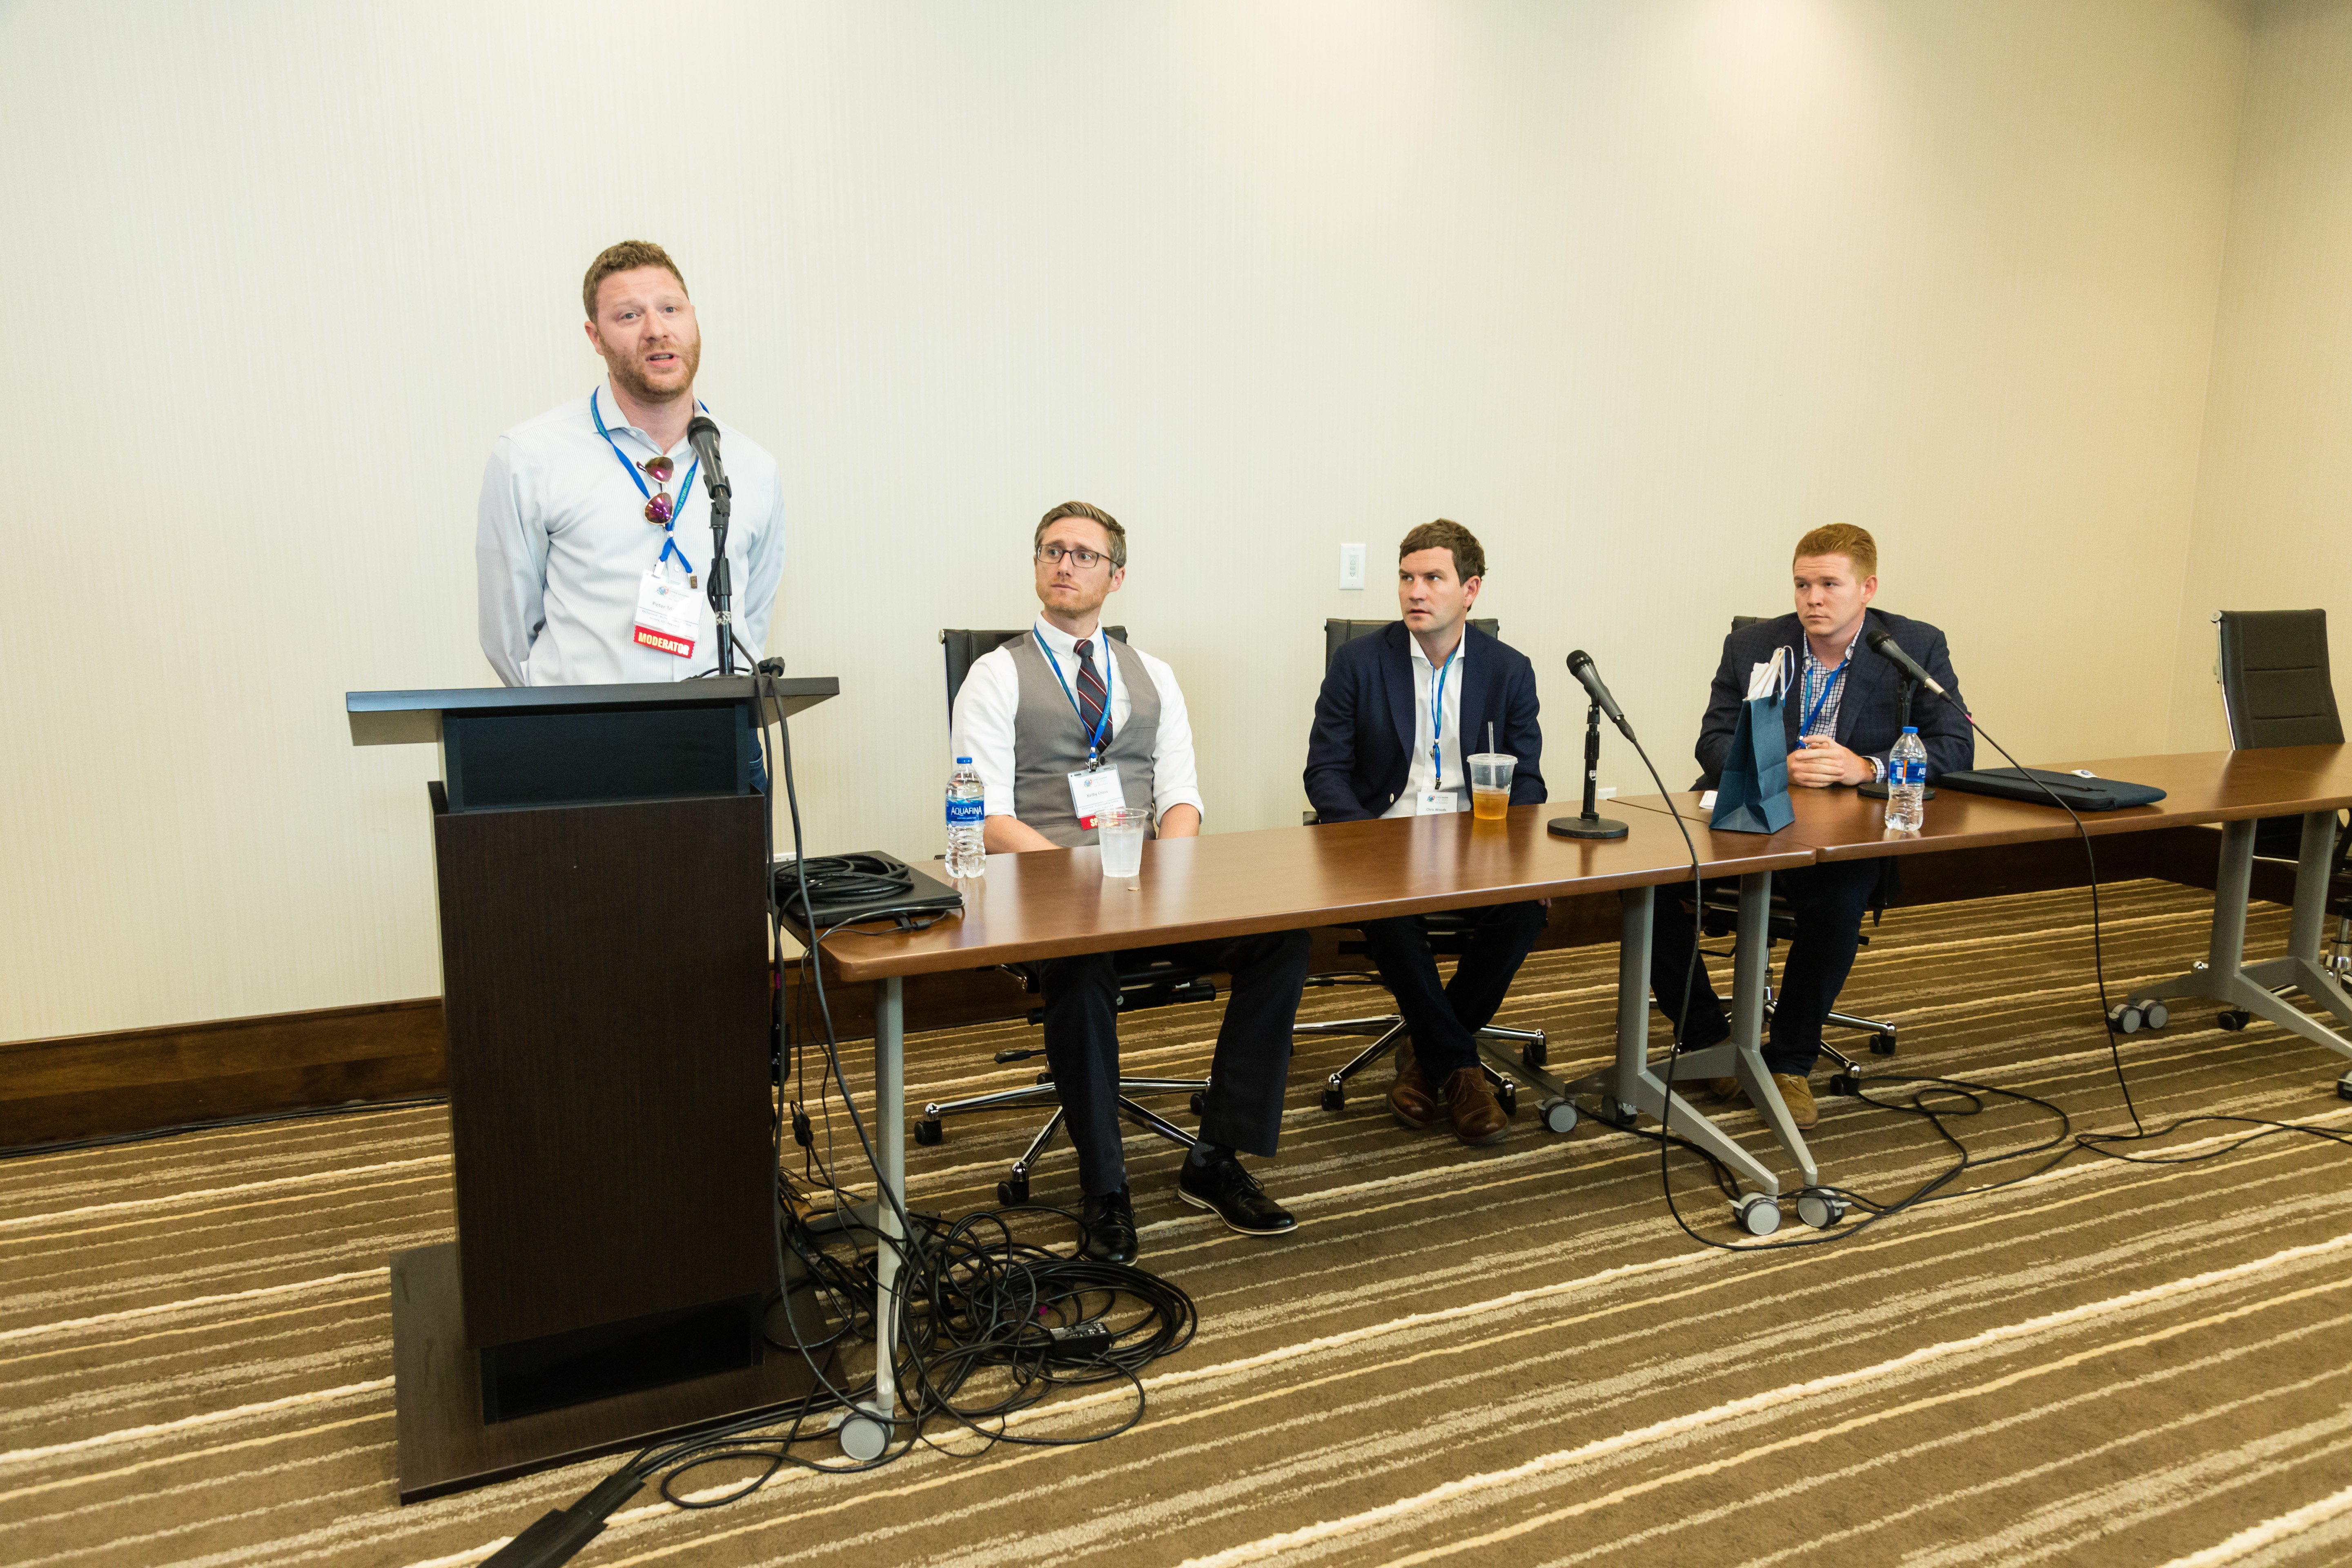 Speakrs at the Modern Day Gold Rush Panel